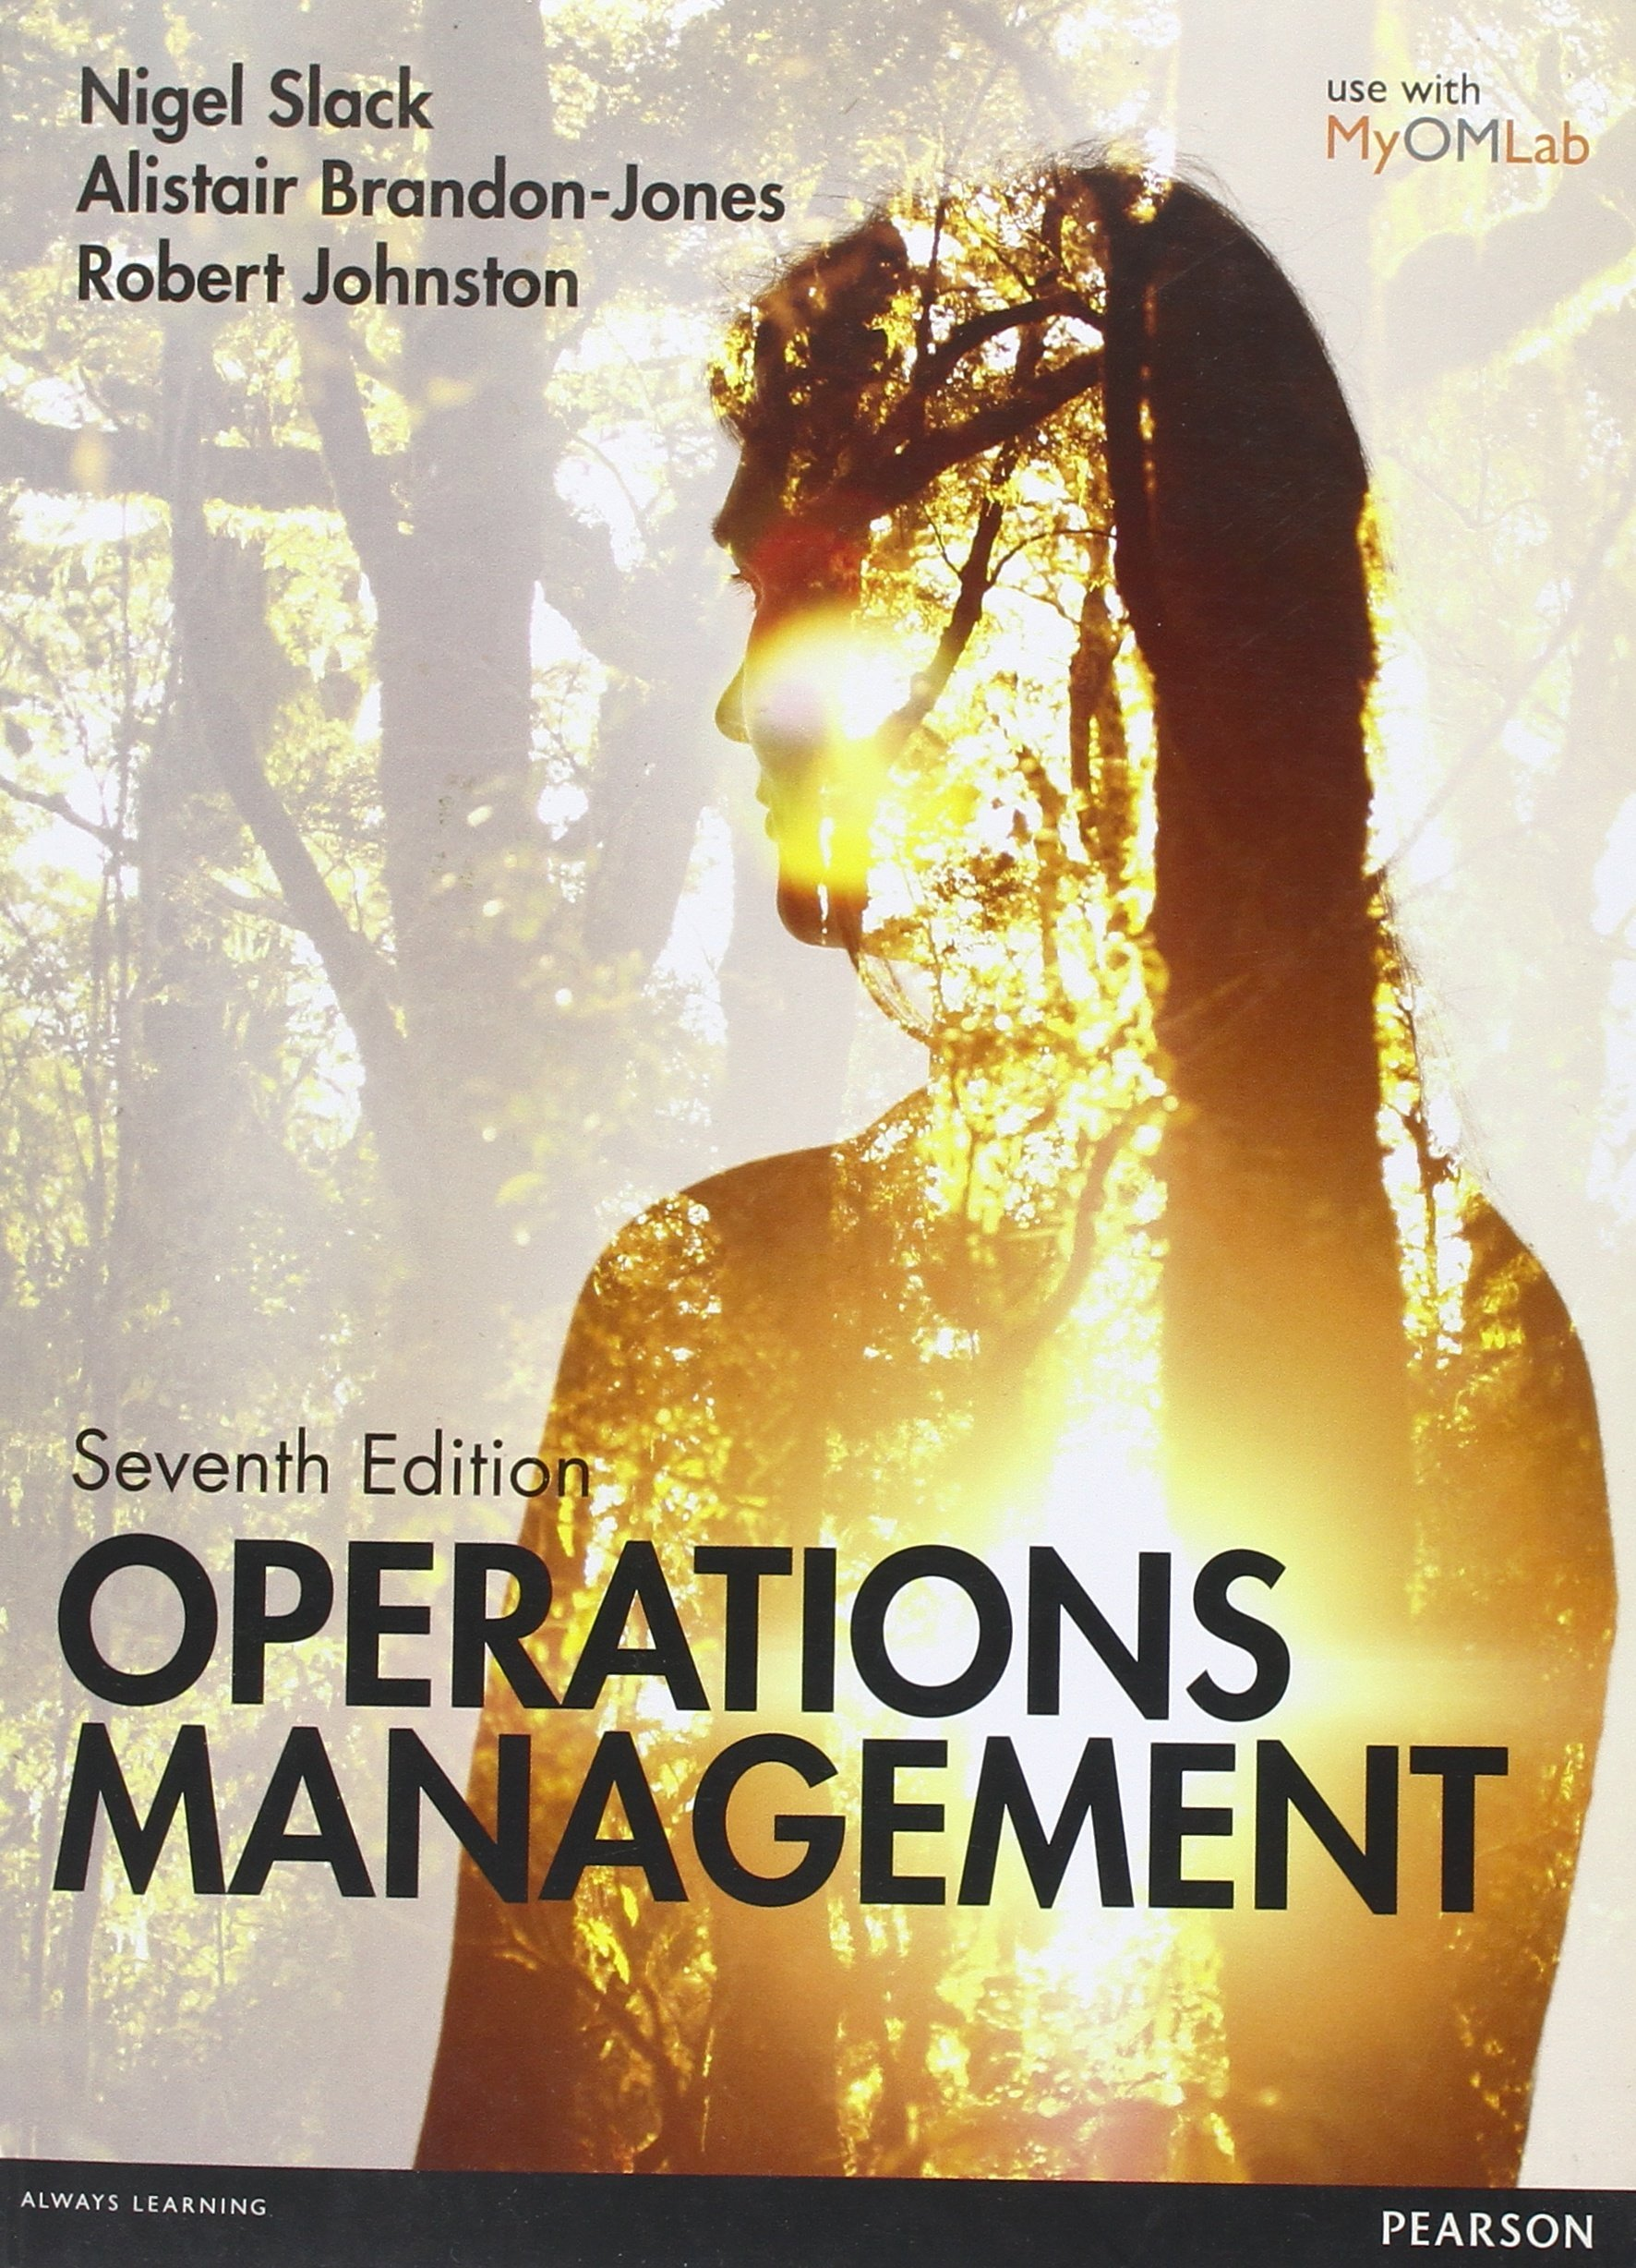 operations management th edition nigel slack alistair brandon operations management 7th edition nigel slack alistair brandon jones robert johnston 9780273776208 books ca